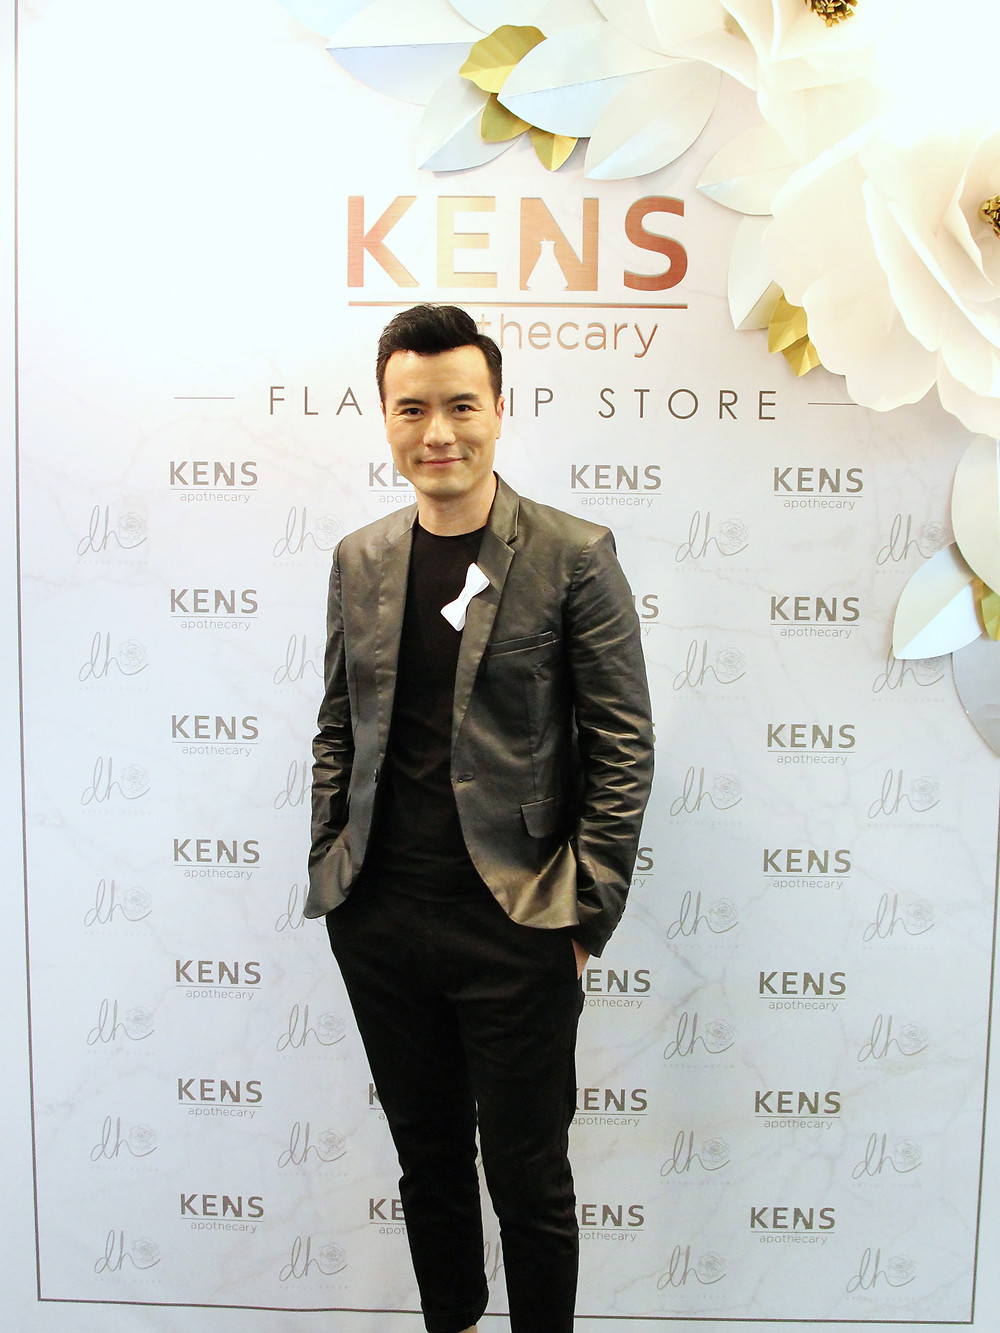 Frederick Lee attending KENS Apothecary Flagship Store Launch at the Gardens Mall Kuala Lumpur